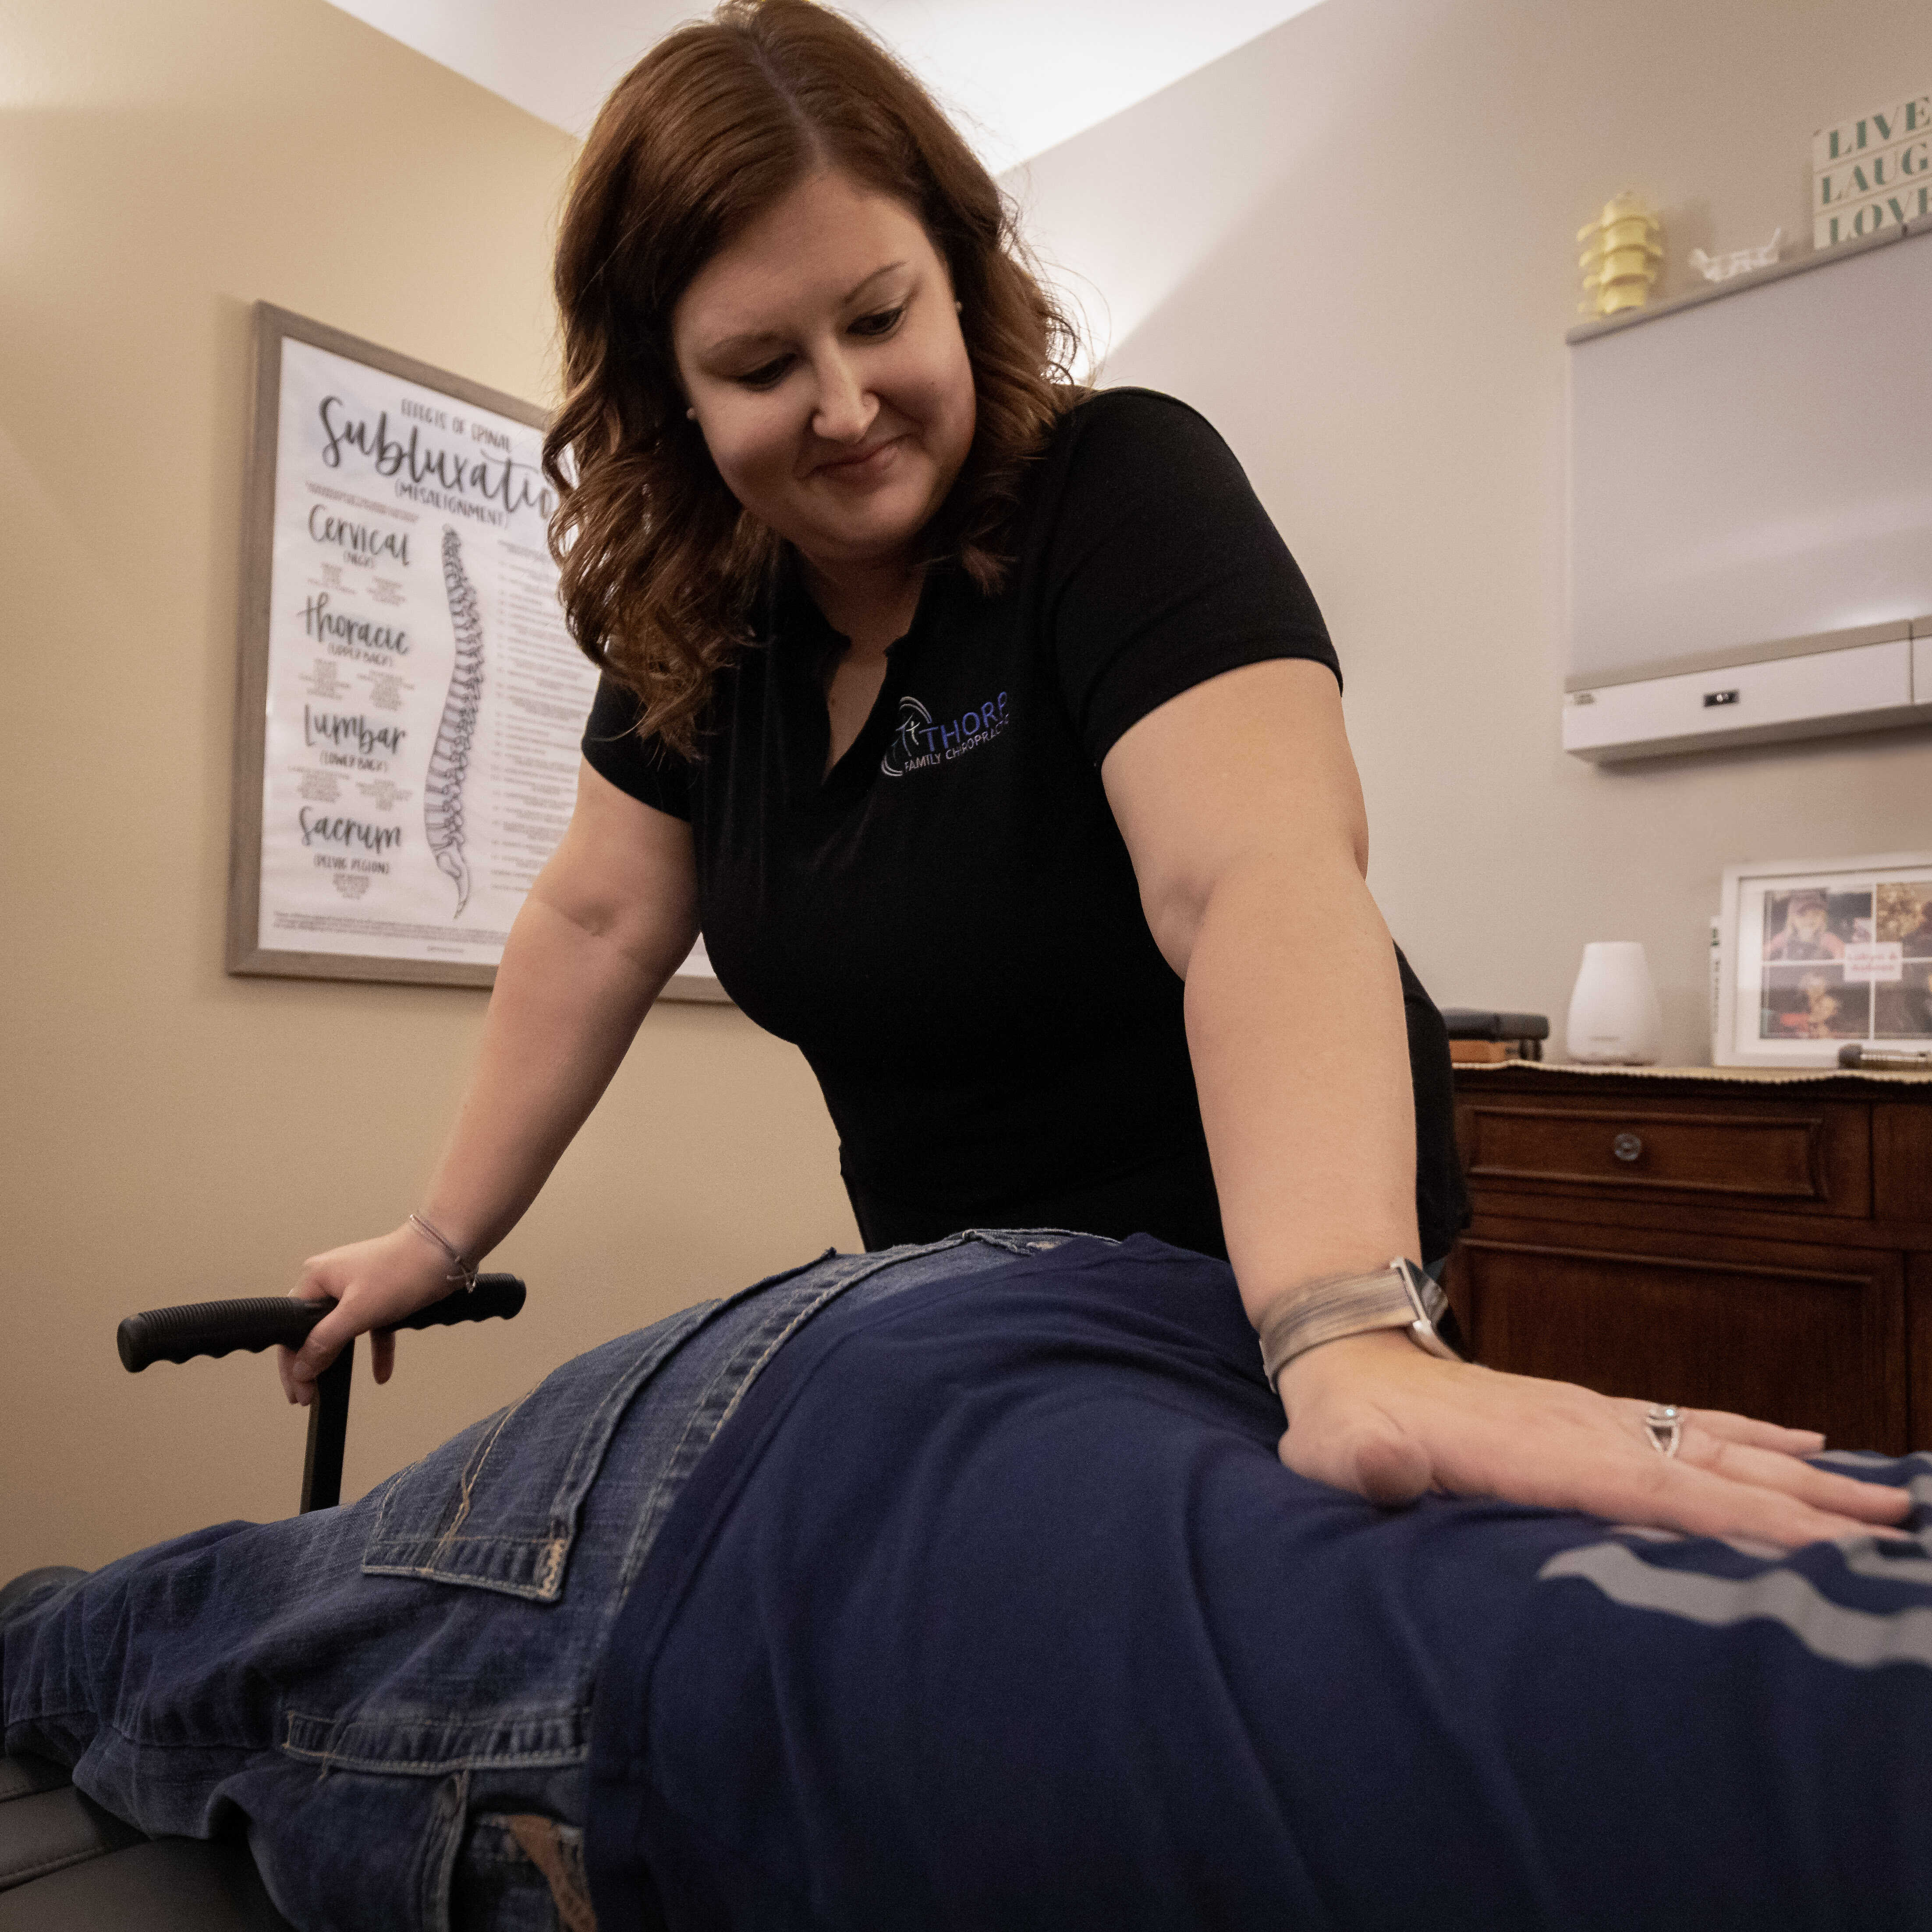 Thorp Family Chiropractic lower back pain removal